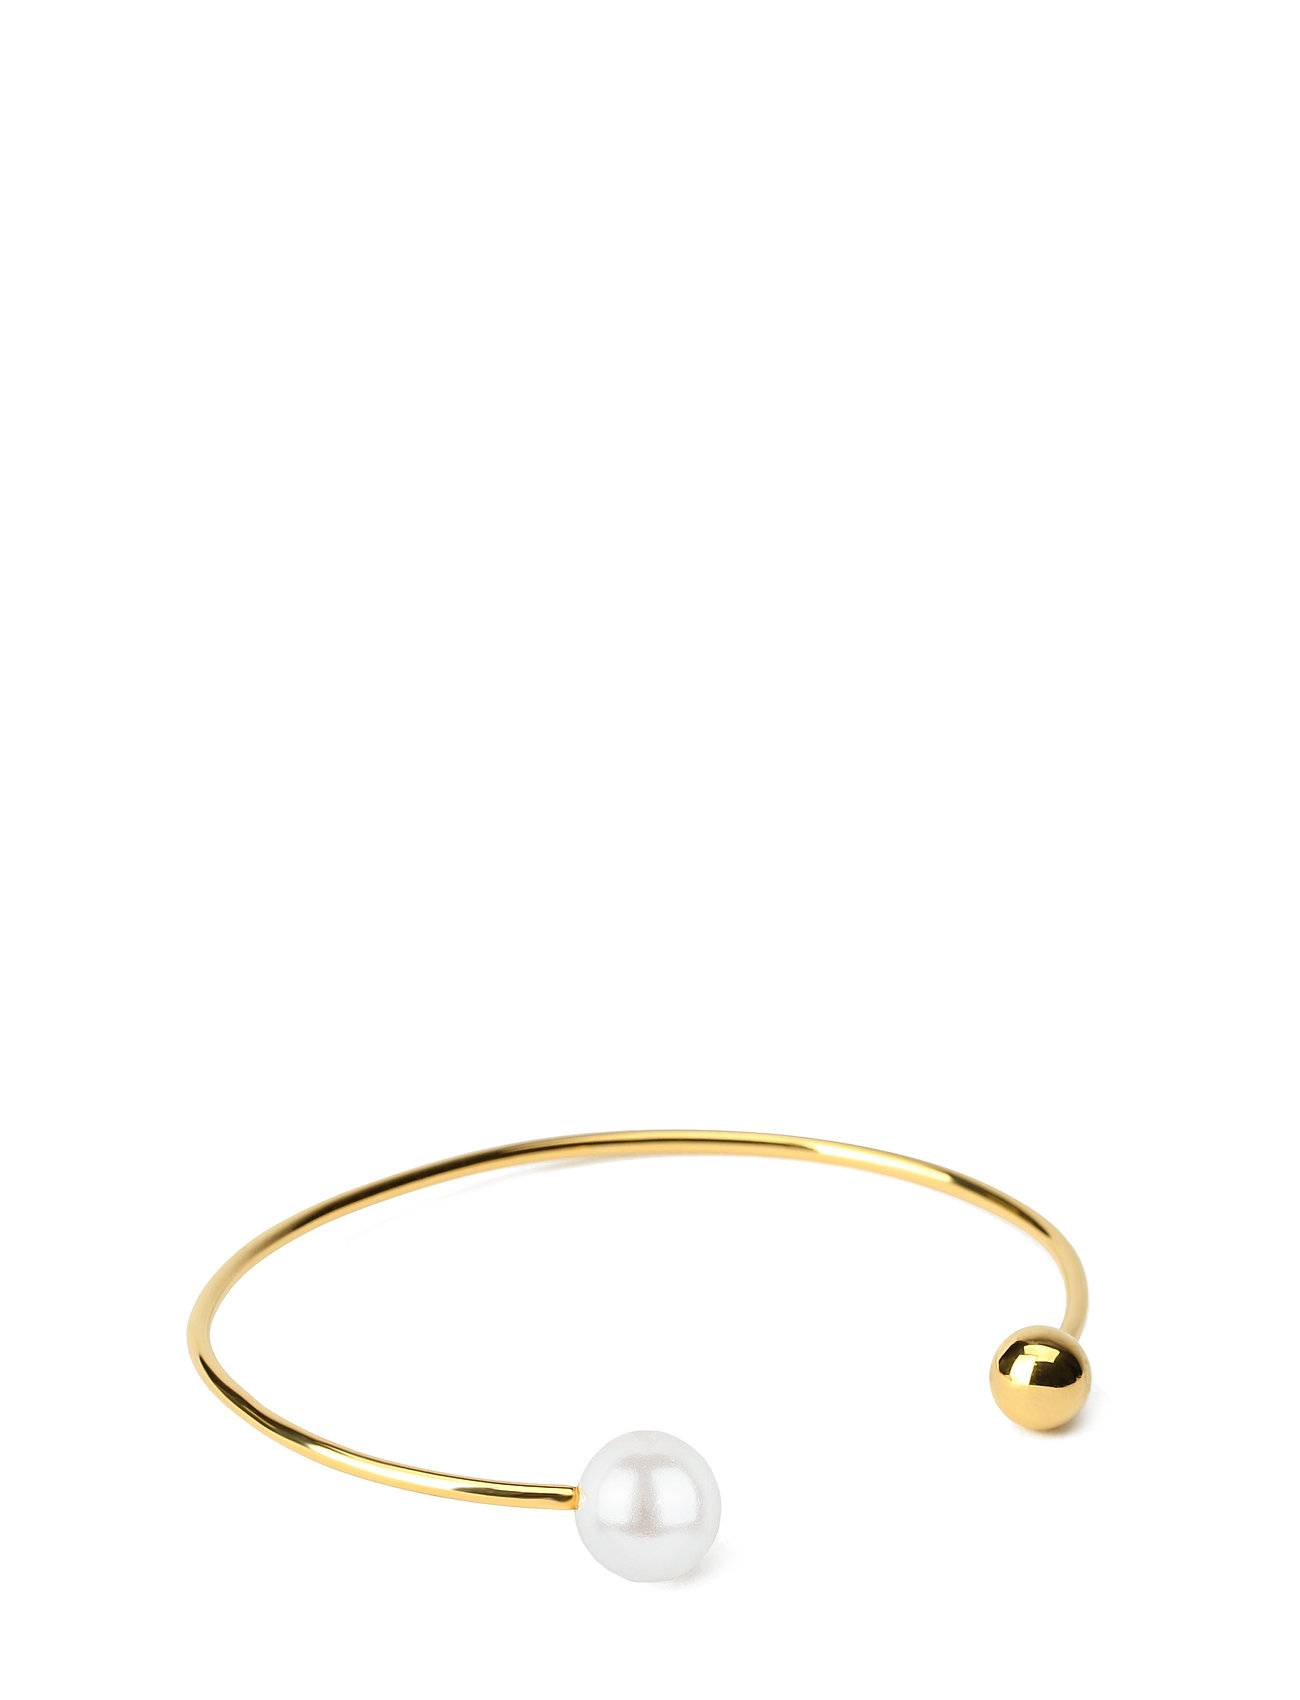 Syster P Pearly Double Pearl Bangle White Accessories Jewellery Bracelets Bangles Kulta Syster P